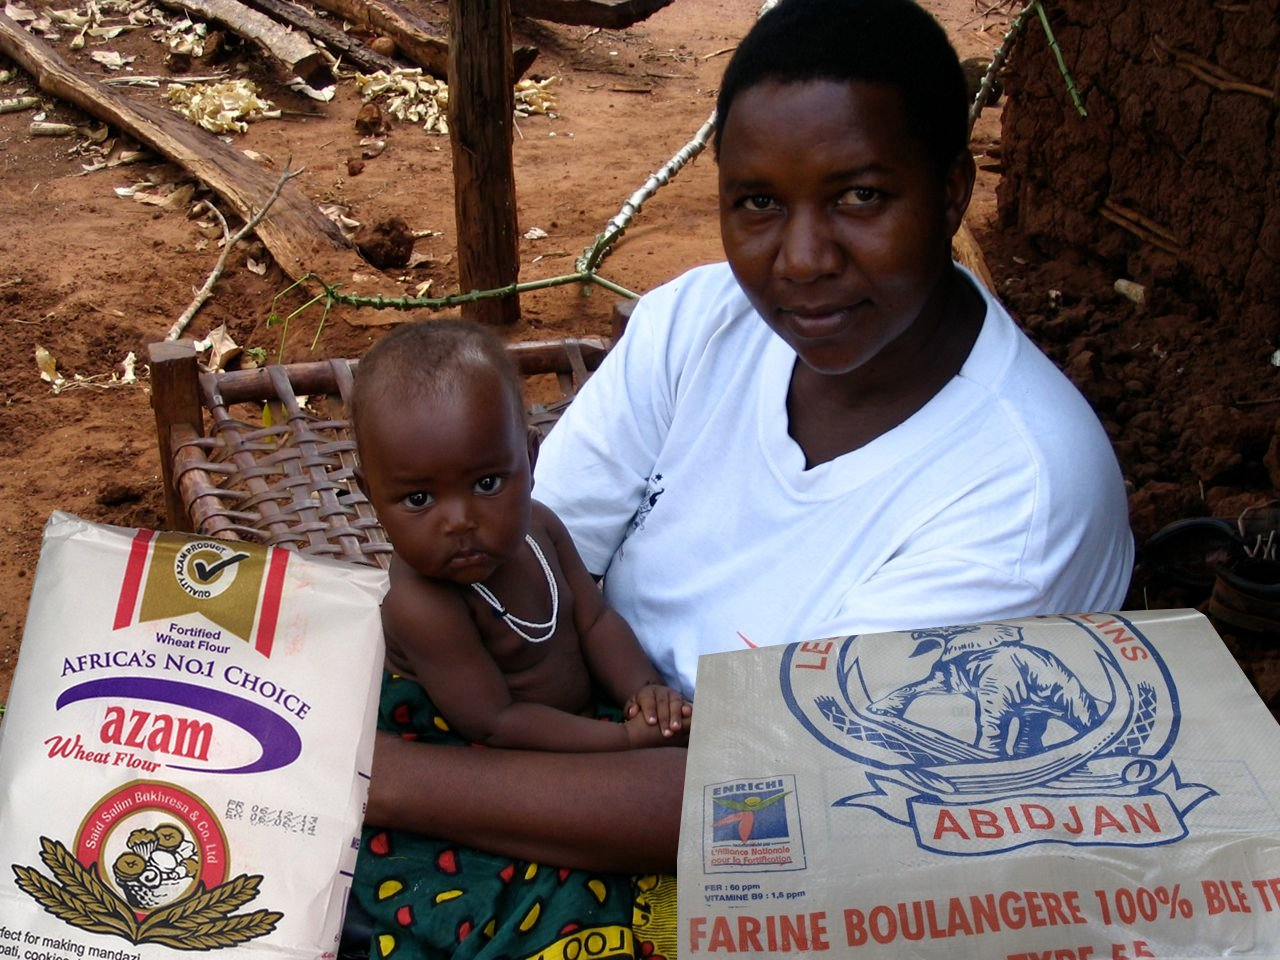 Smarter Futures is a public-private-civic partnership that supports similar partnerships of flour millers, governments, vitamin and mineral suppliers, international organizations, and academic institutions to make fortification of wheat flour a reality in Africa.